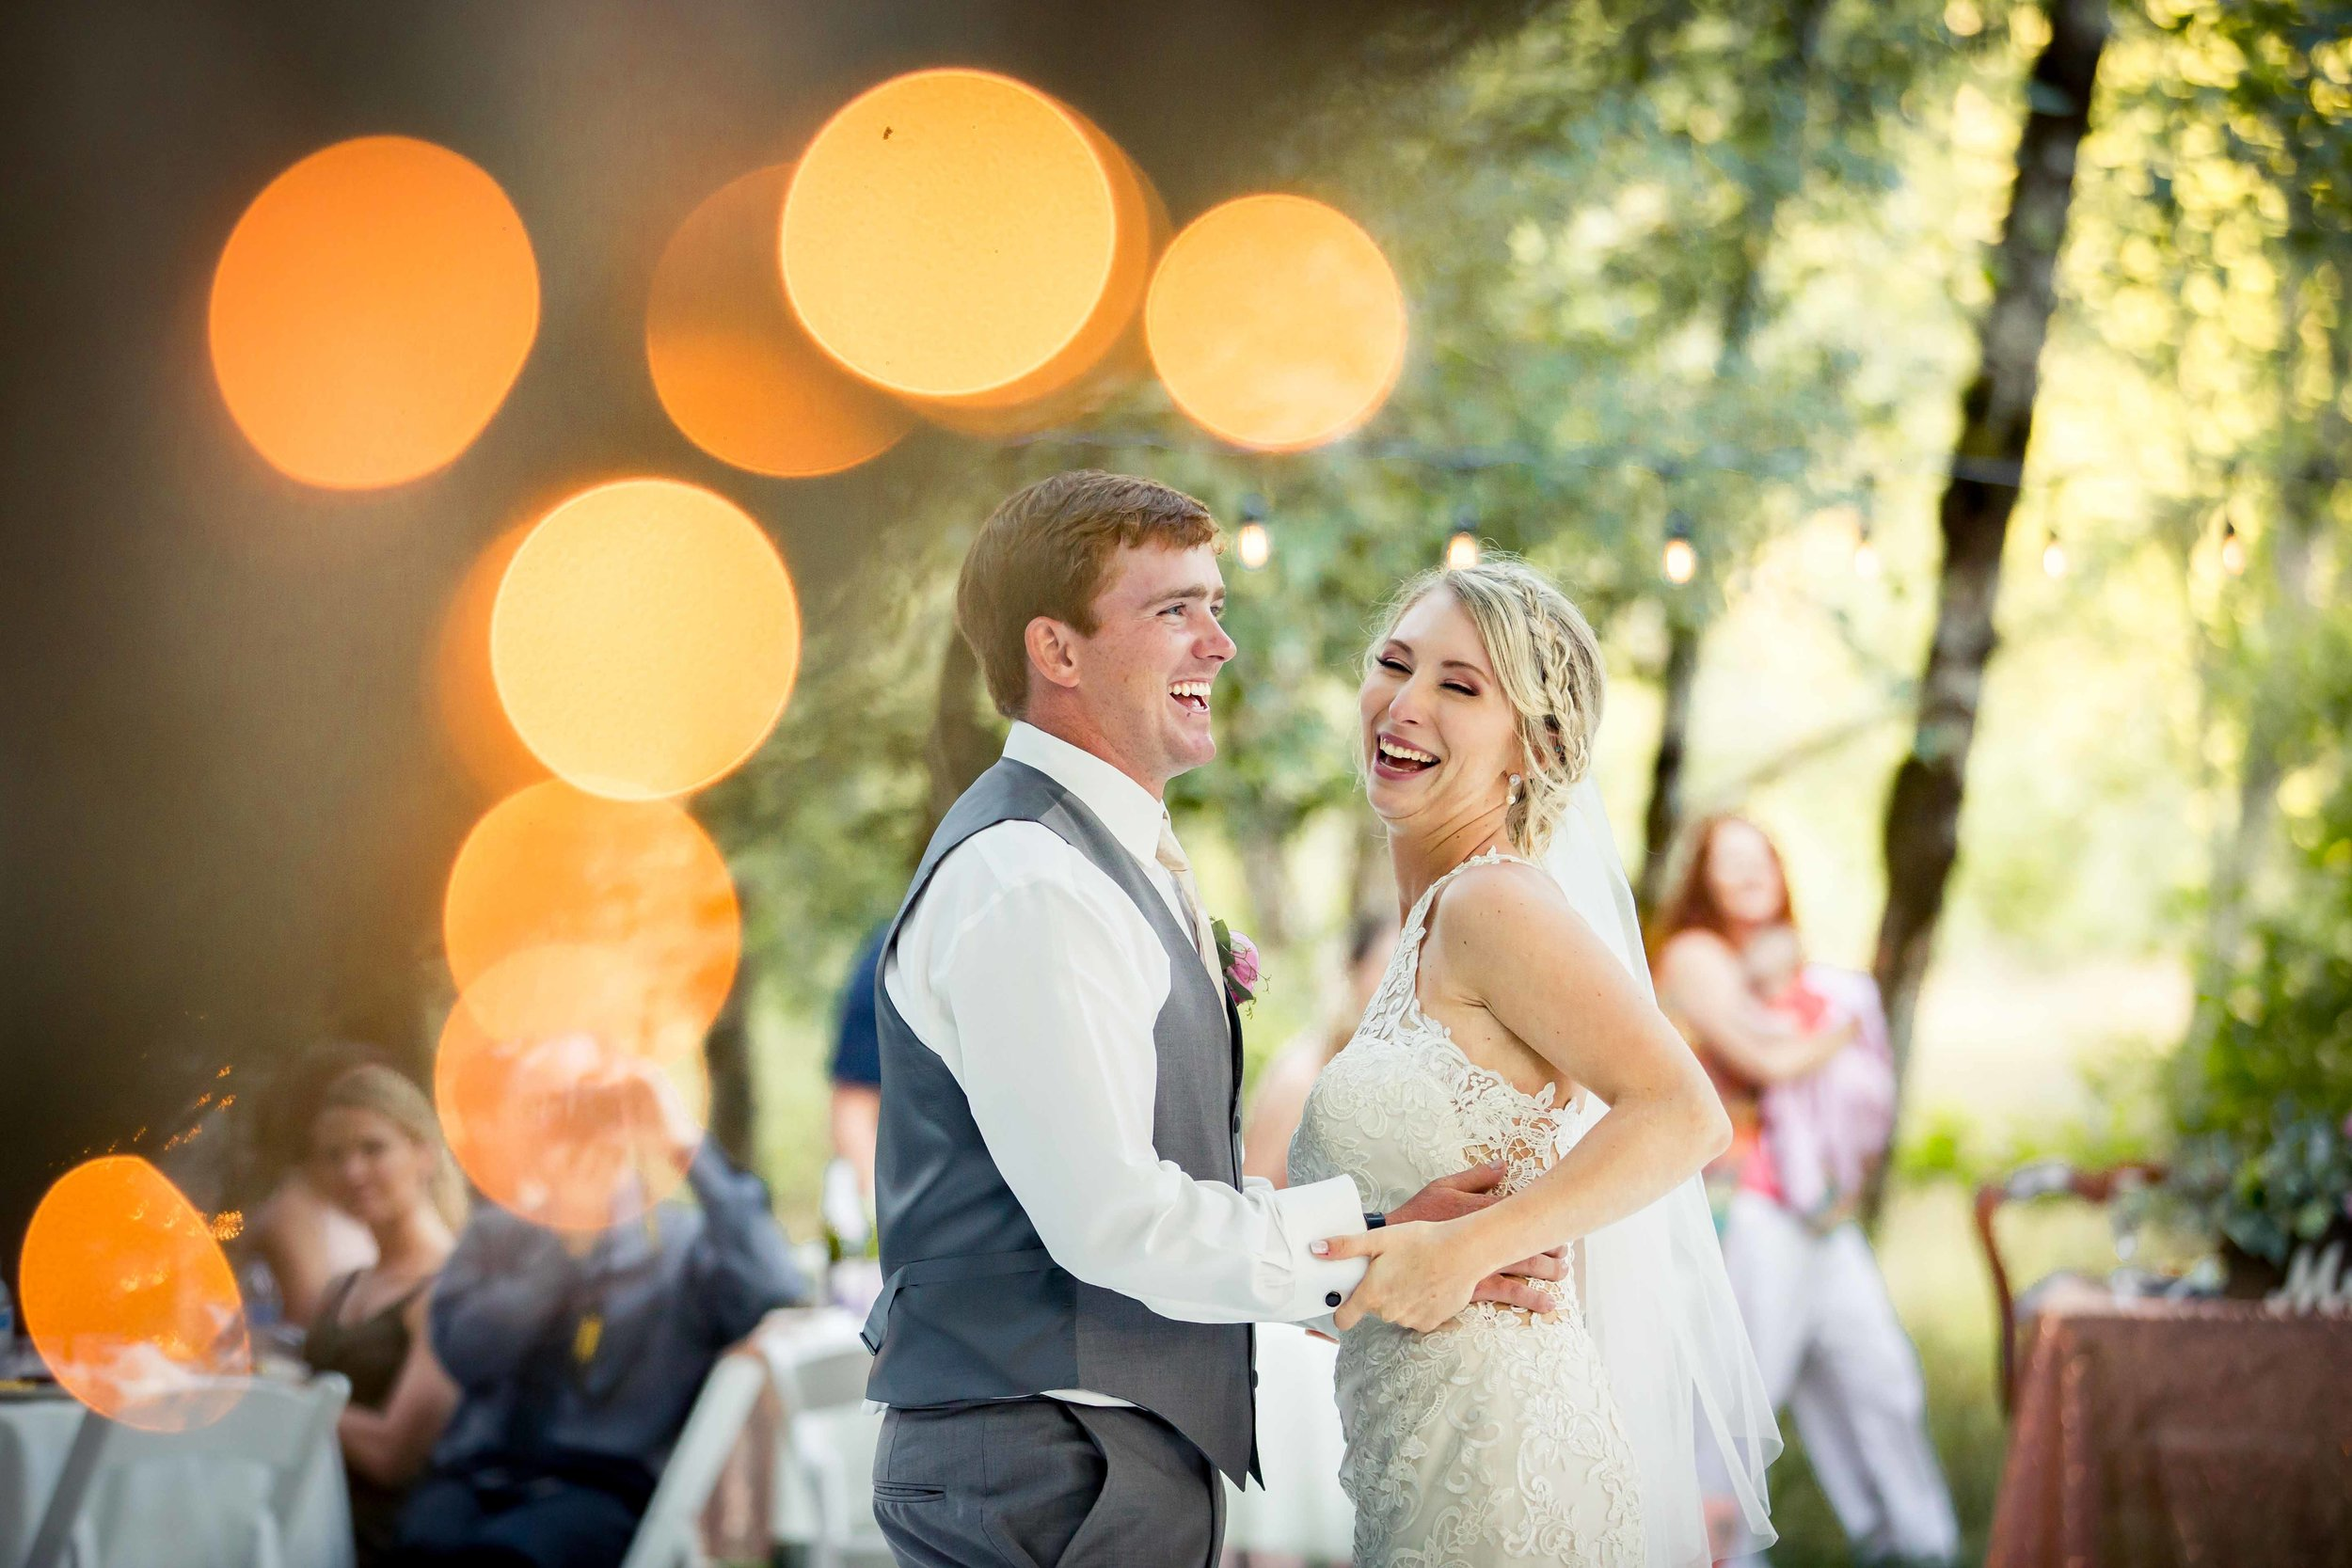 Reception Kalee and Charlie - Dillon Vibes Photography-7.jpg